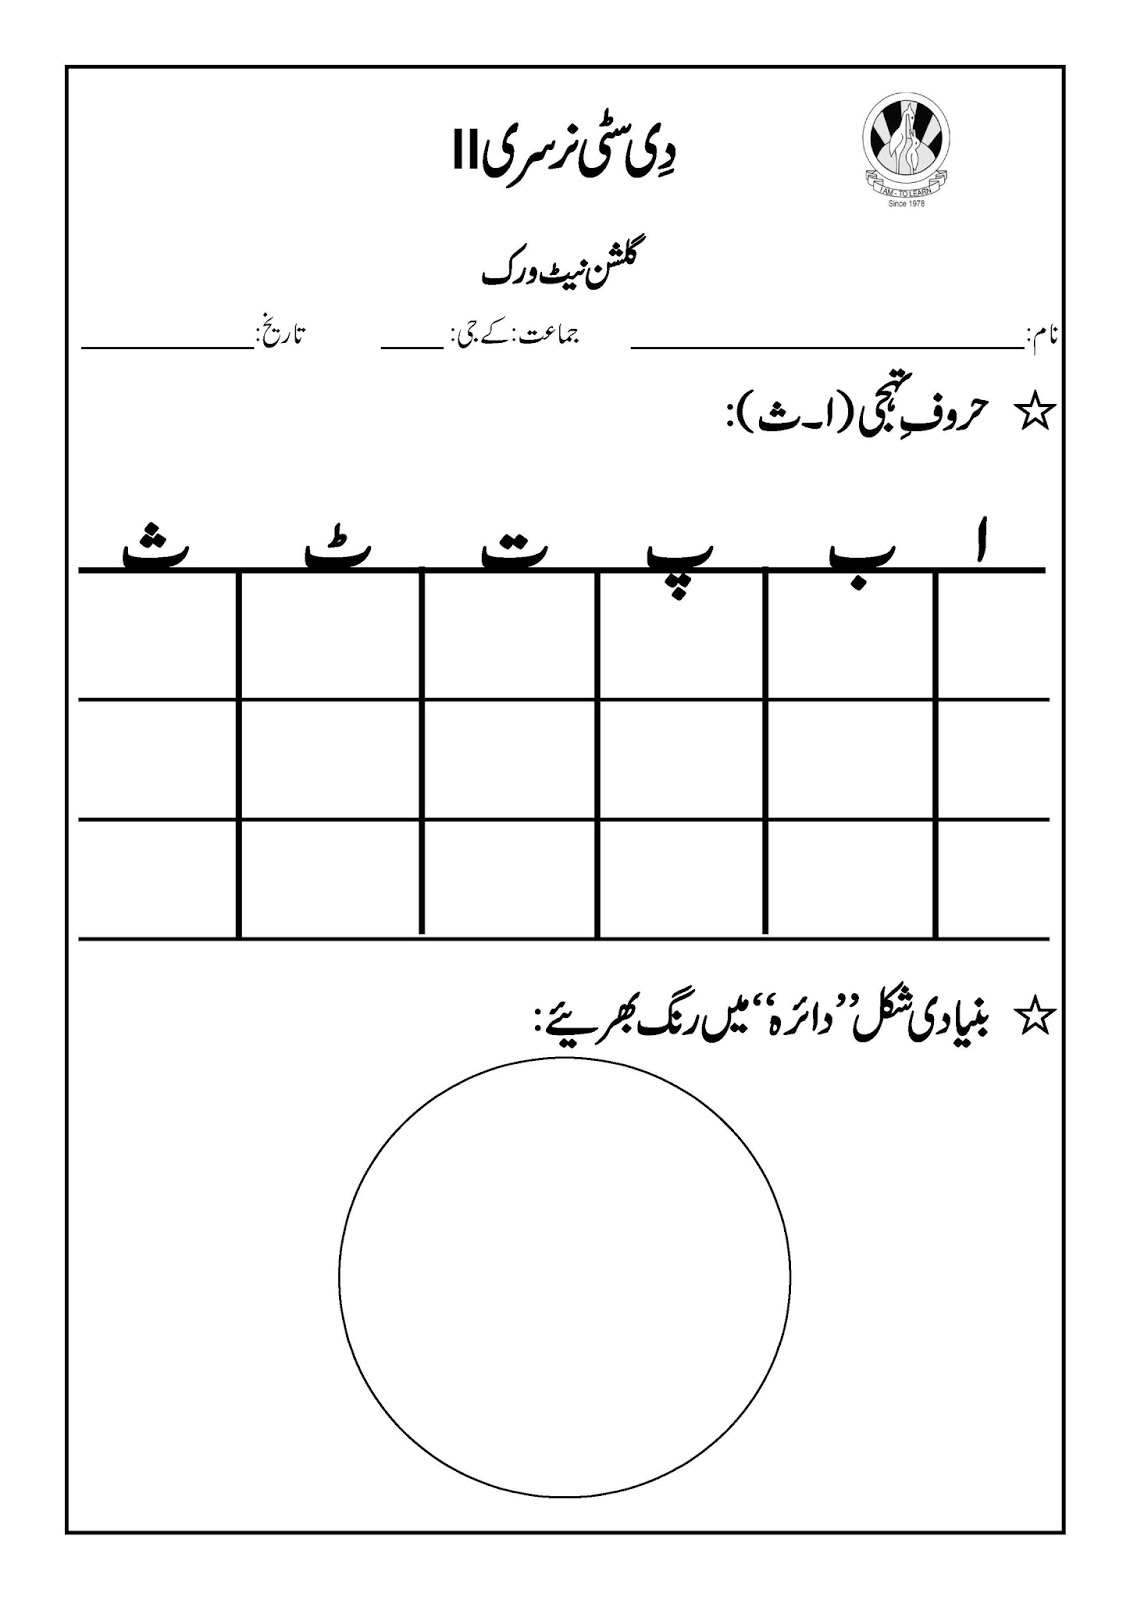 Free Printable Urdu Worksheet For Kindergarten